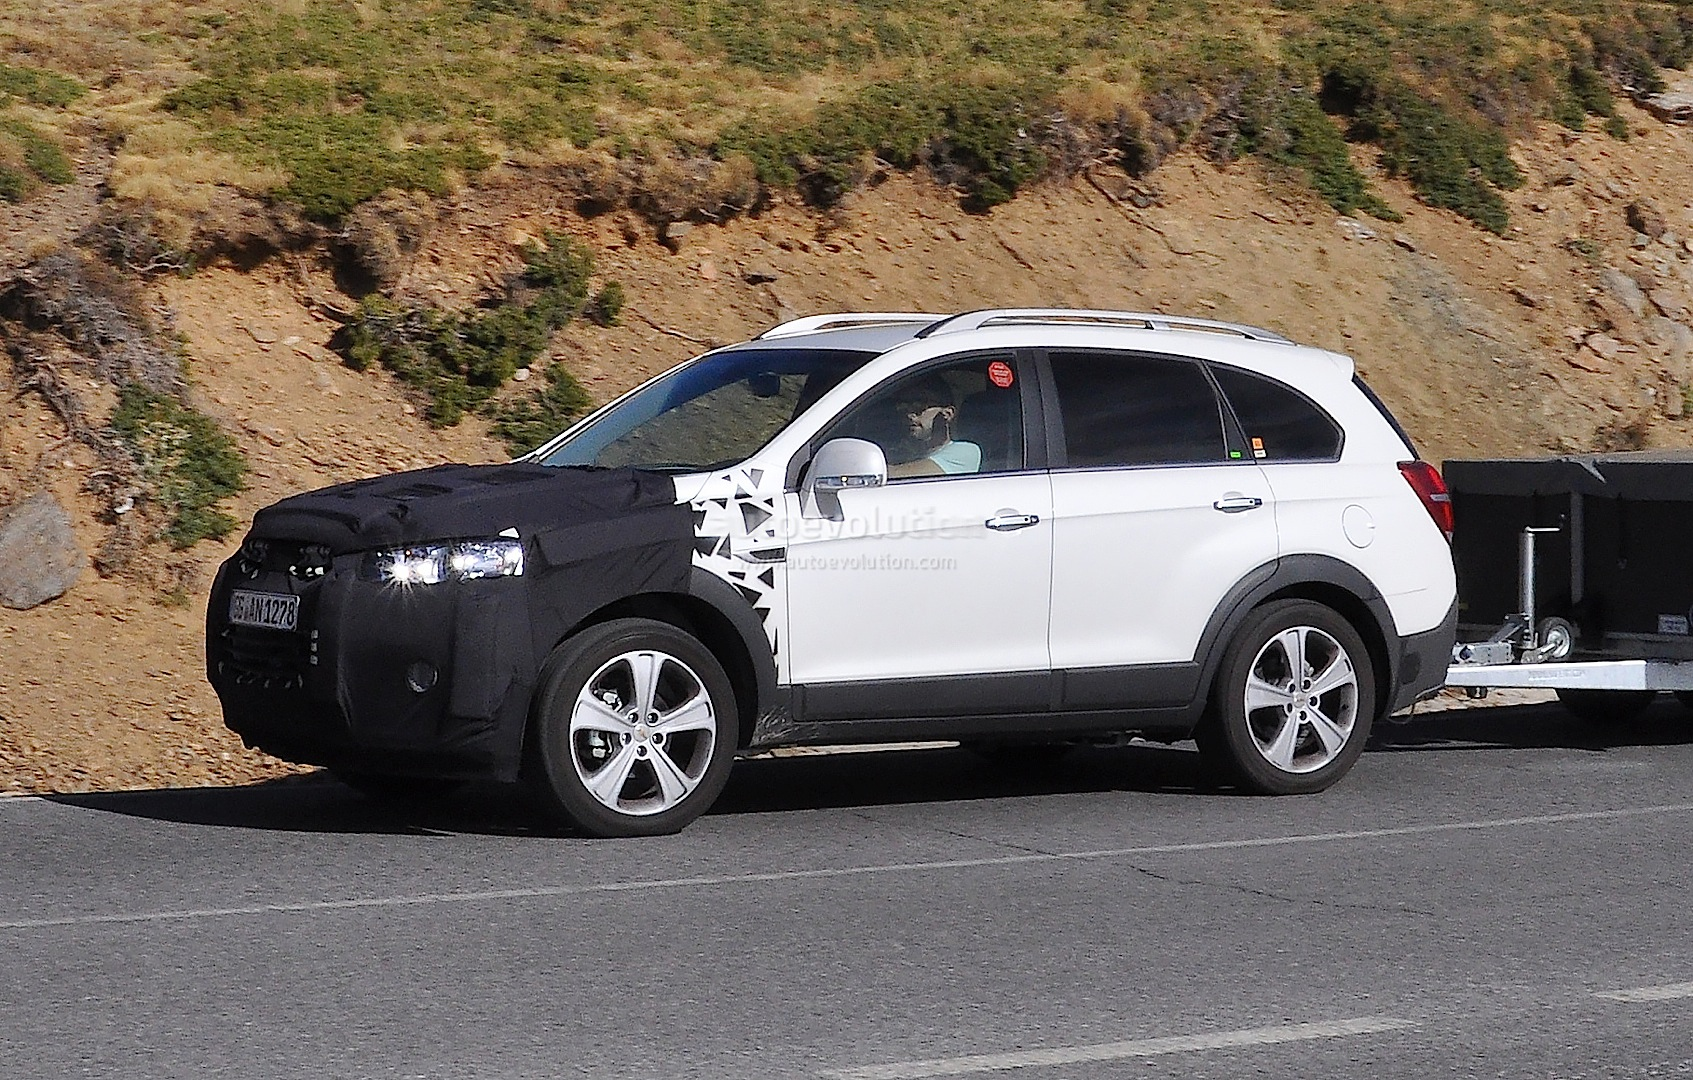 2015 Chevrolet Captiva / Opel Antara Facelift Spied ...